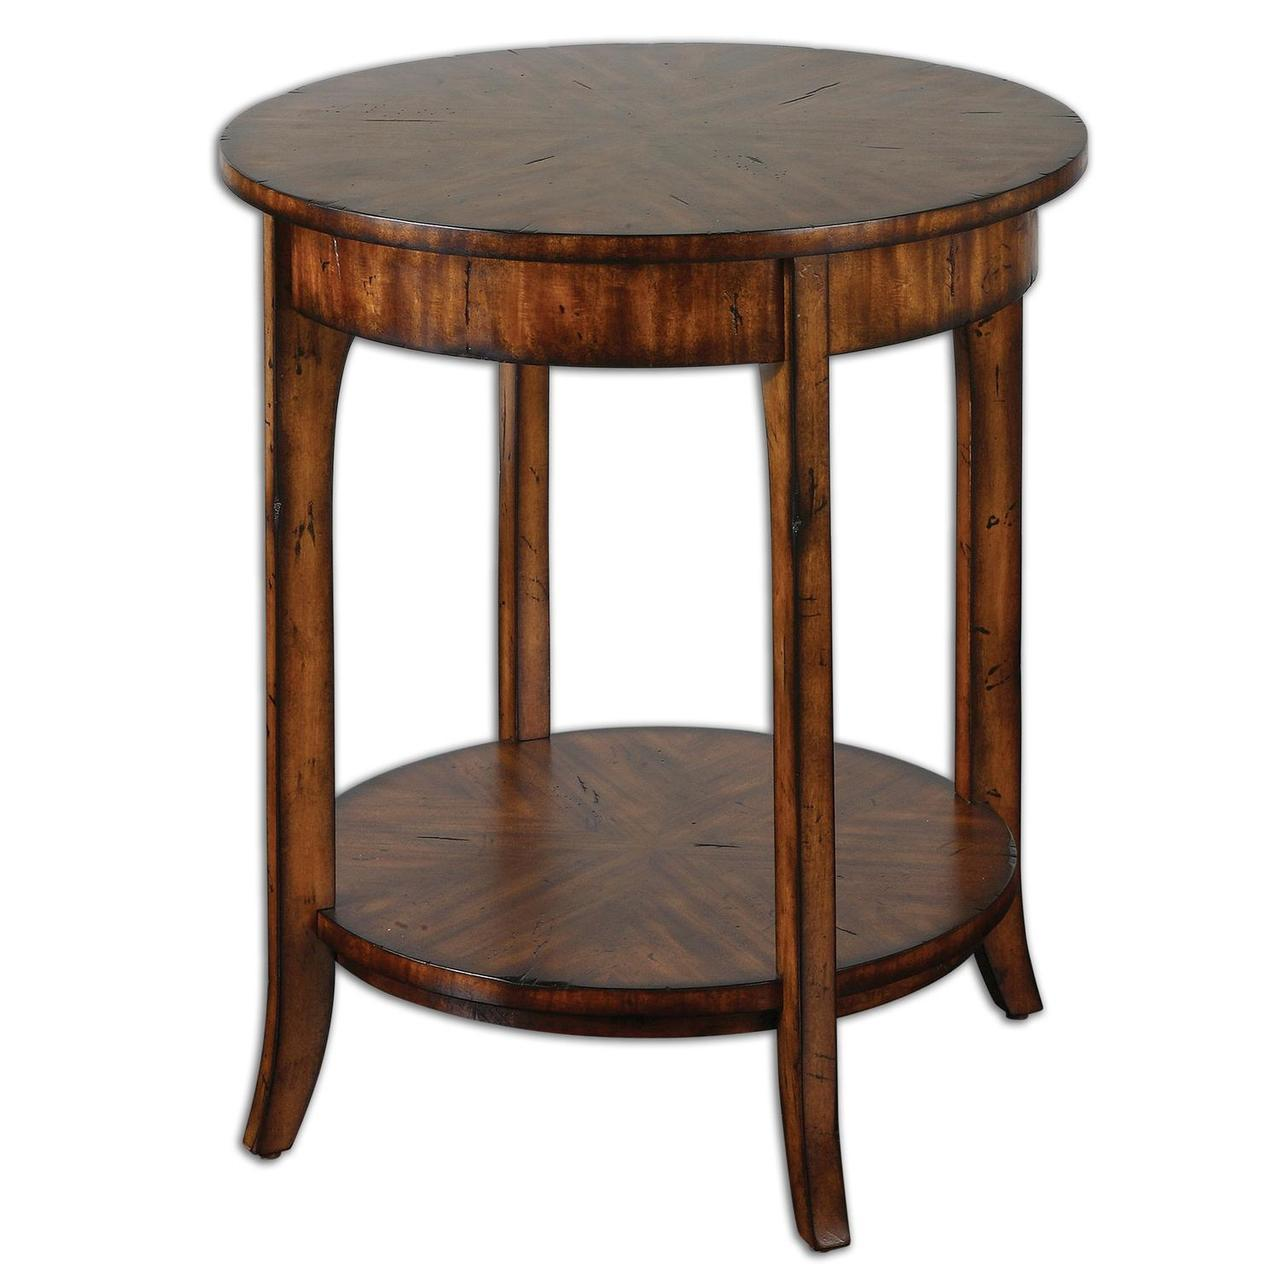 ambrose distressed barn brown primavera veneer round accent side table meyda tiffany shades light shower head square metal gray and white coffee sheesham unfinished console